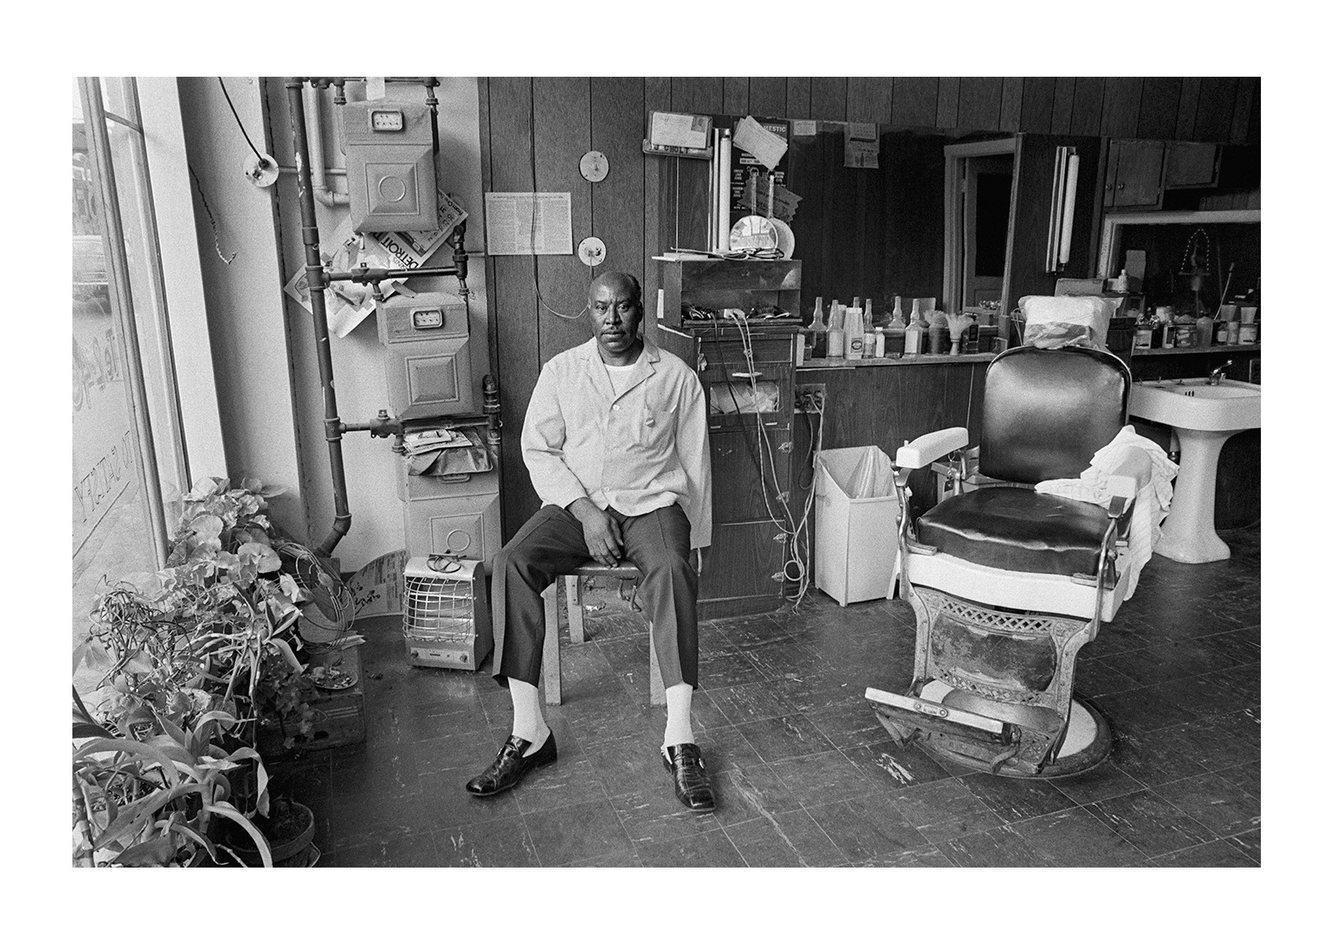 John Holt, Barber, Holt Beauty-Barber Shop, 3410 Brush St., Detroit 1972